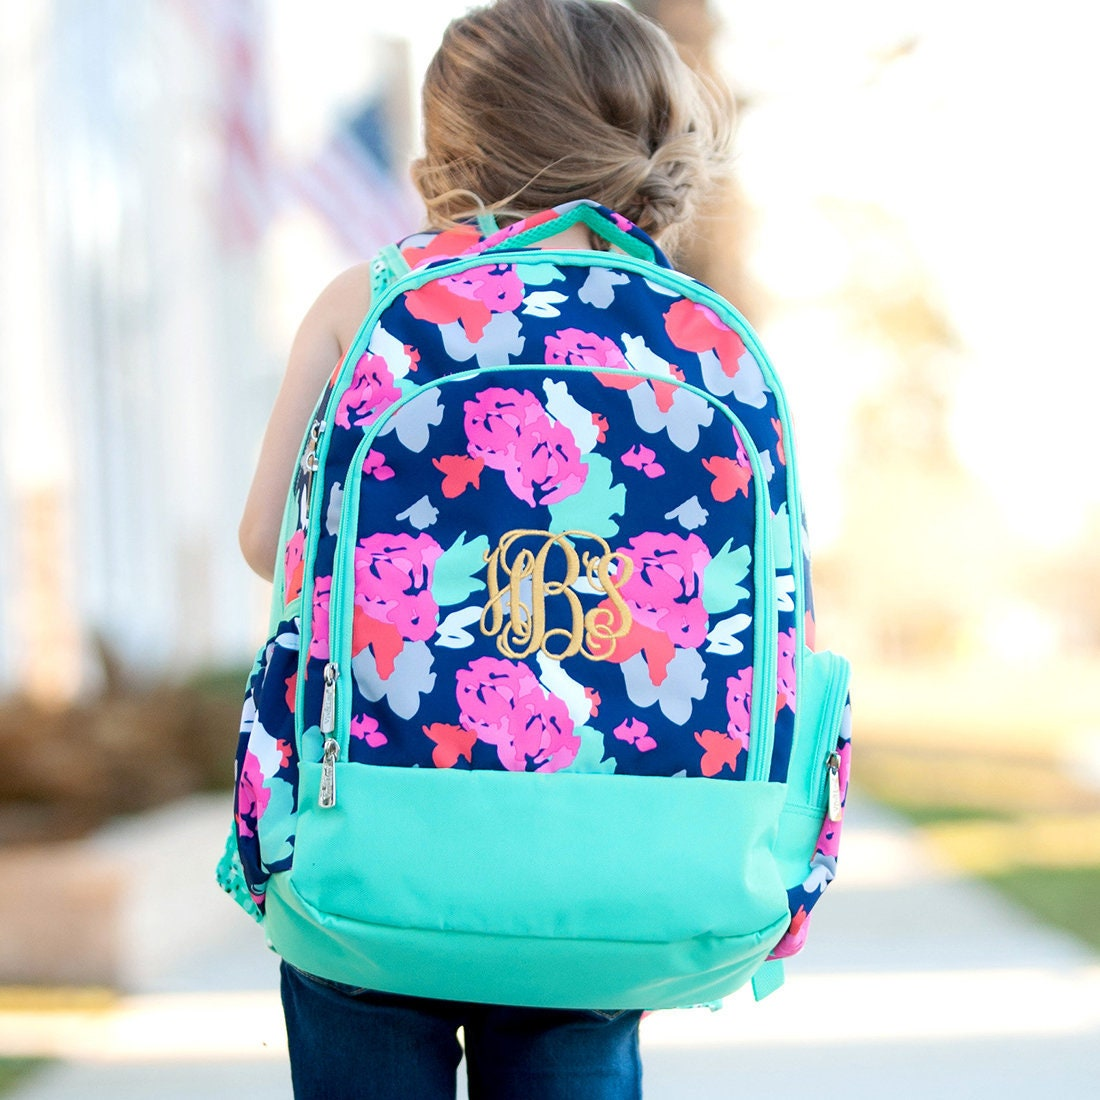 Monogrammed Backpack e050780275189